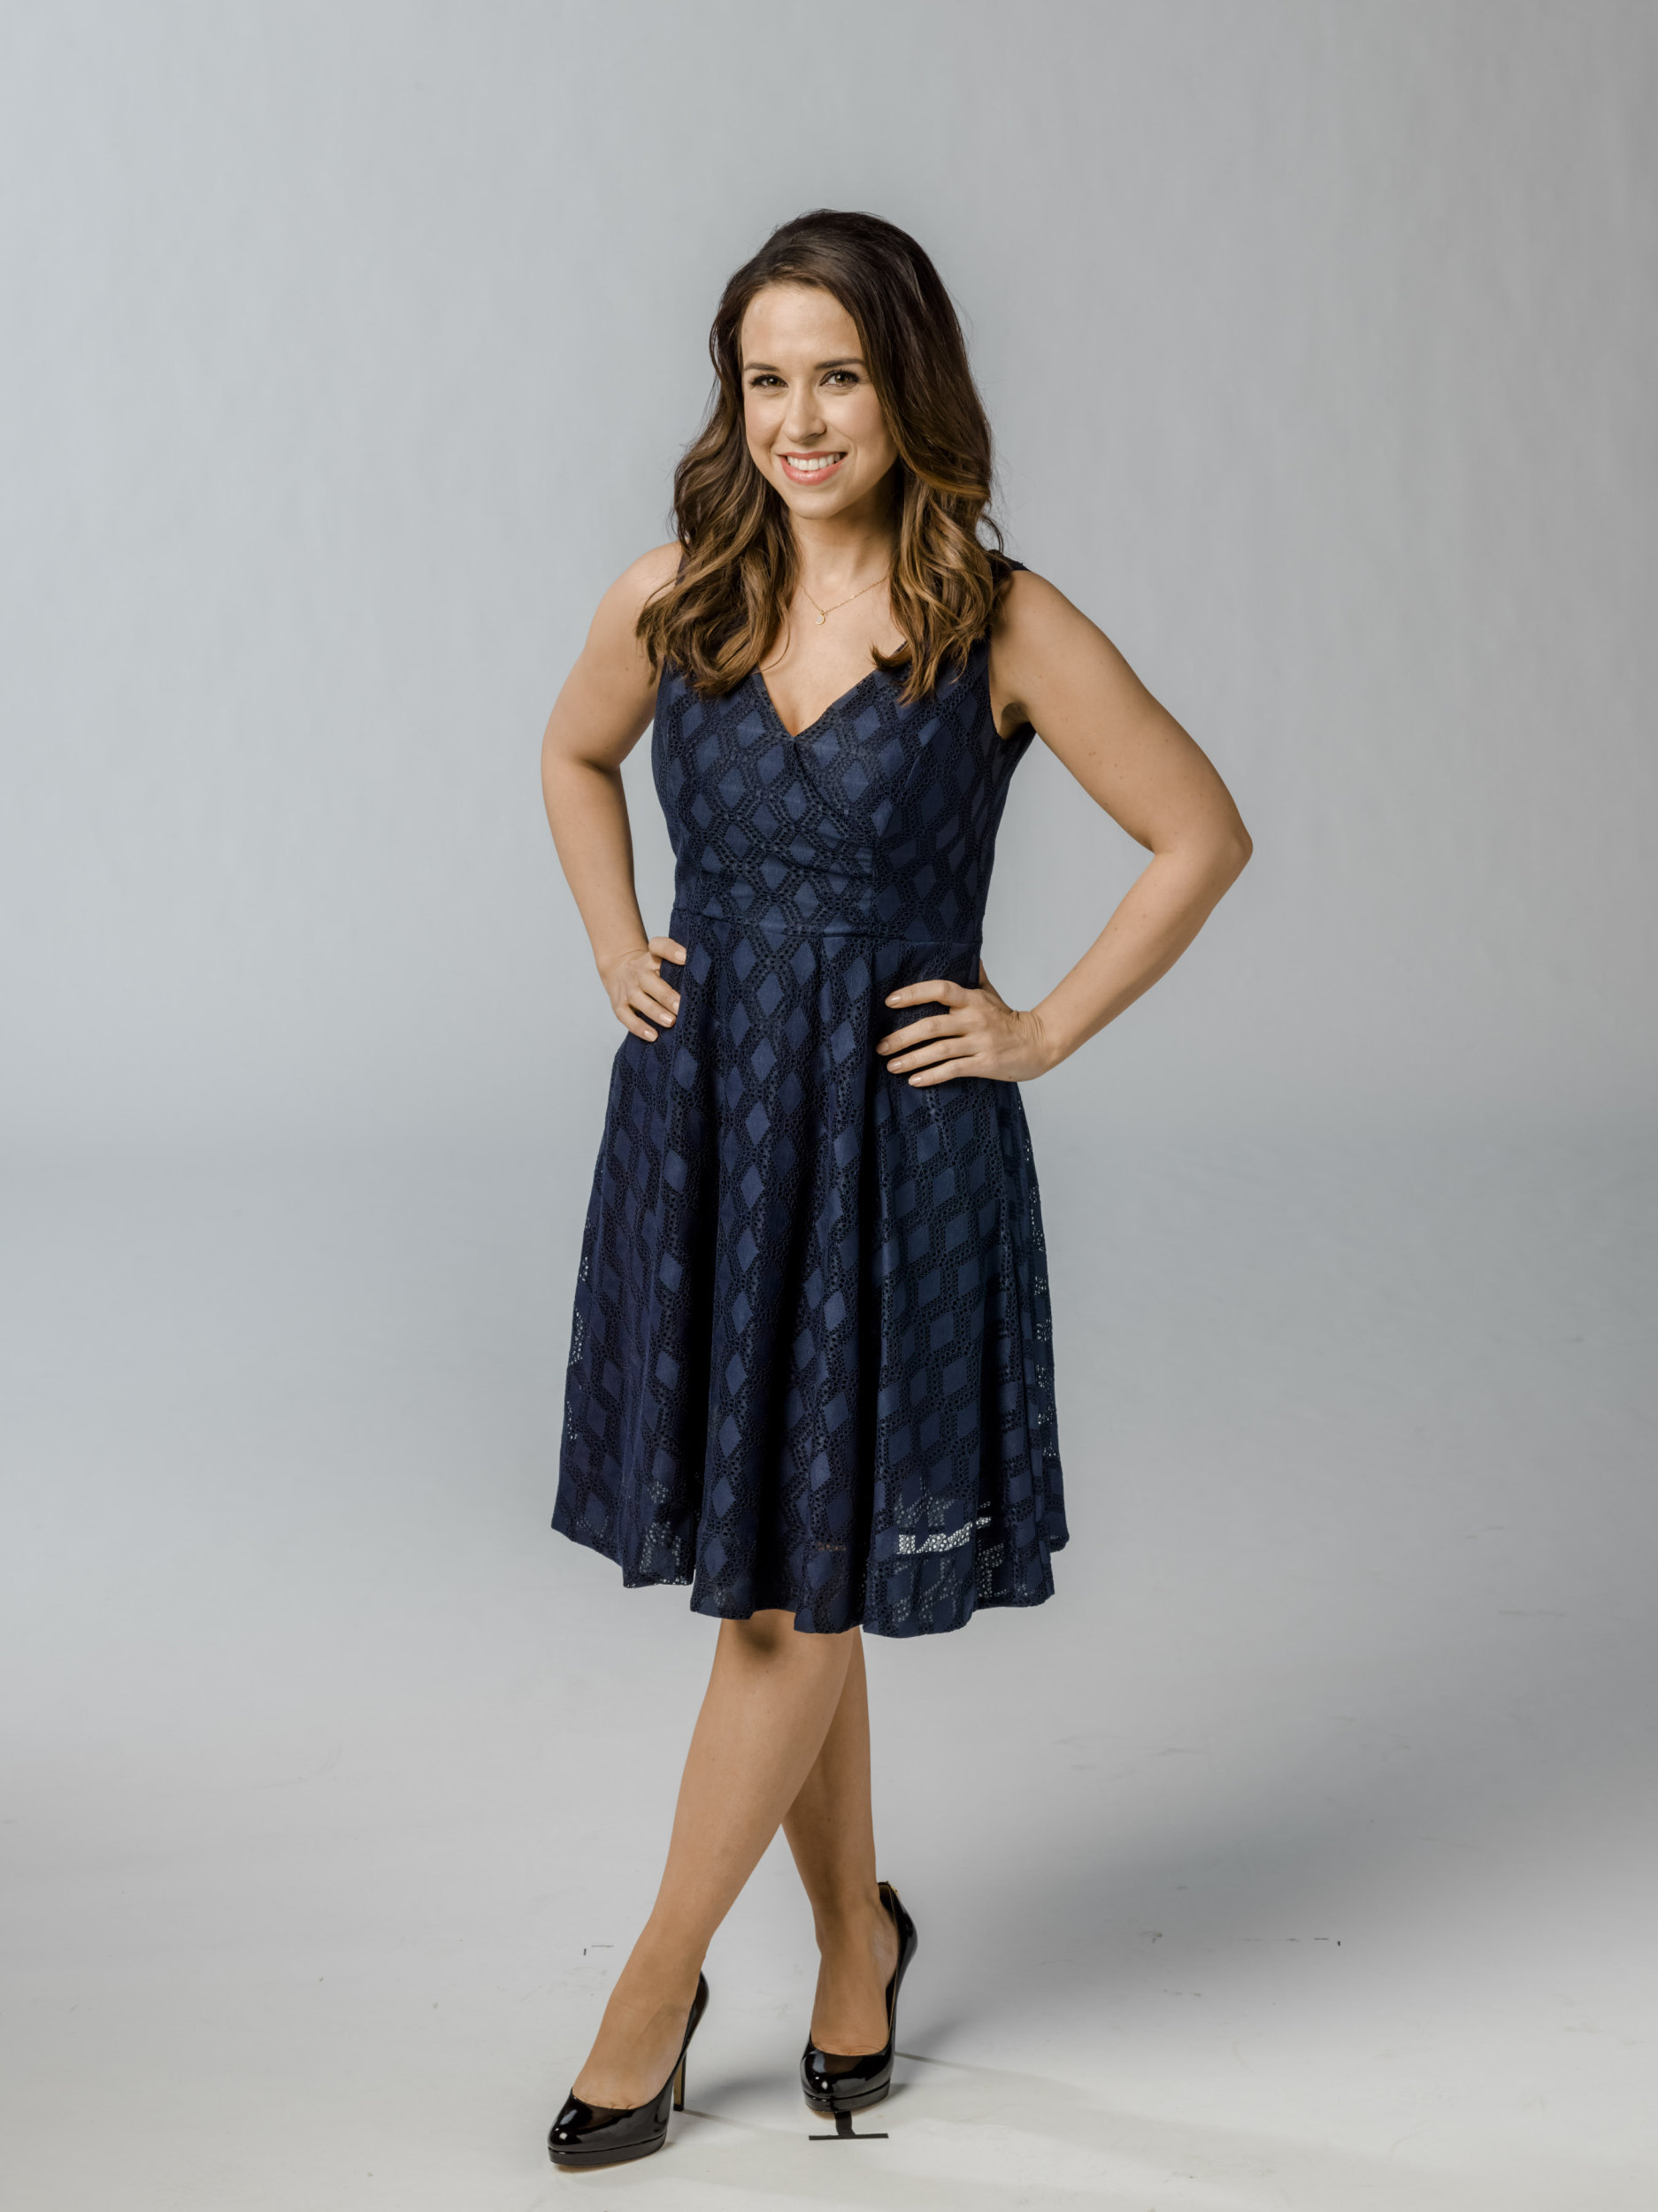 The Sweetest Christmas.Lacey Chabert As Kylie On The Sweetest Christmas Hallmark